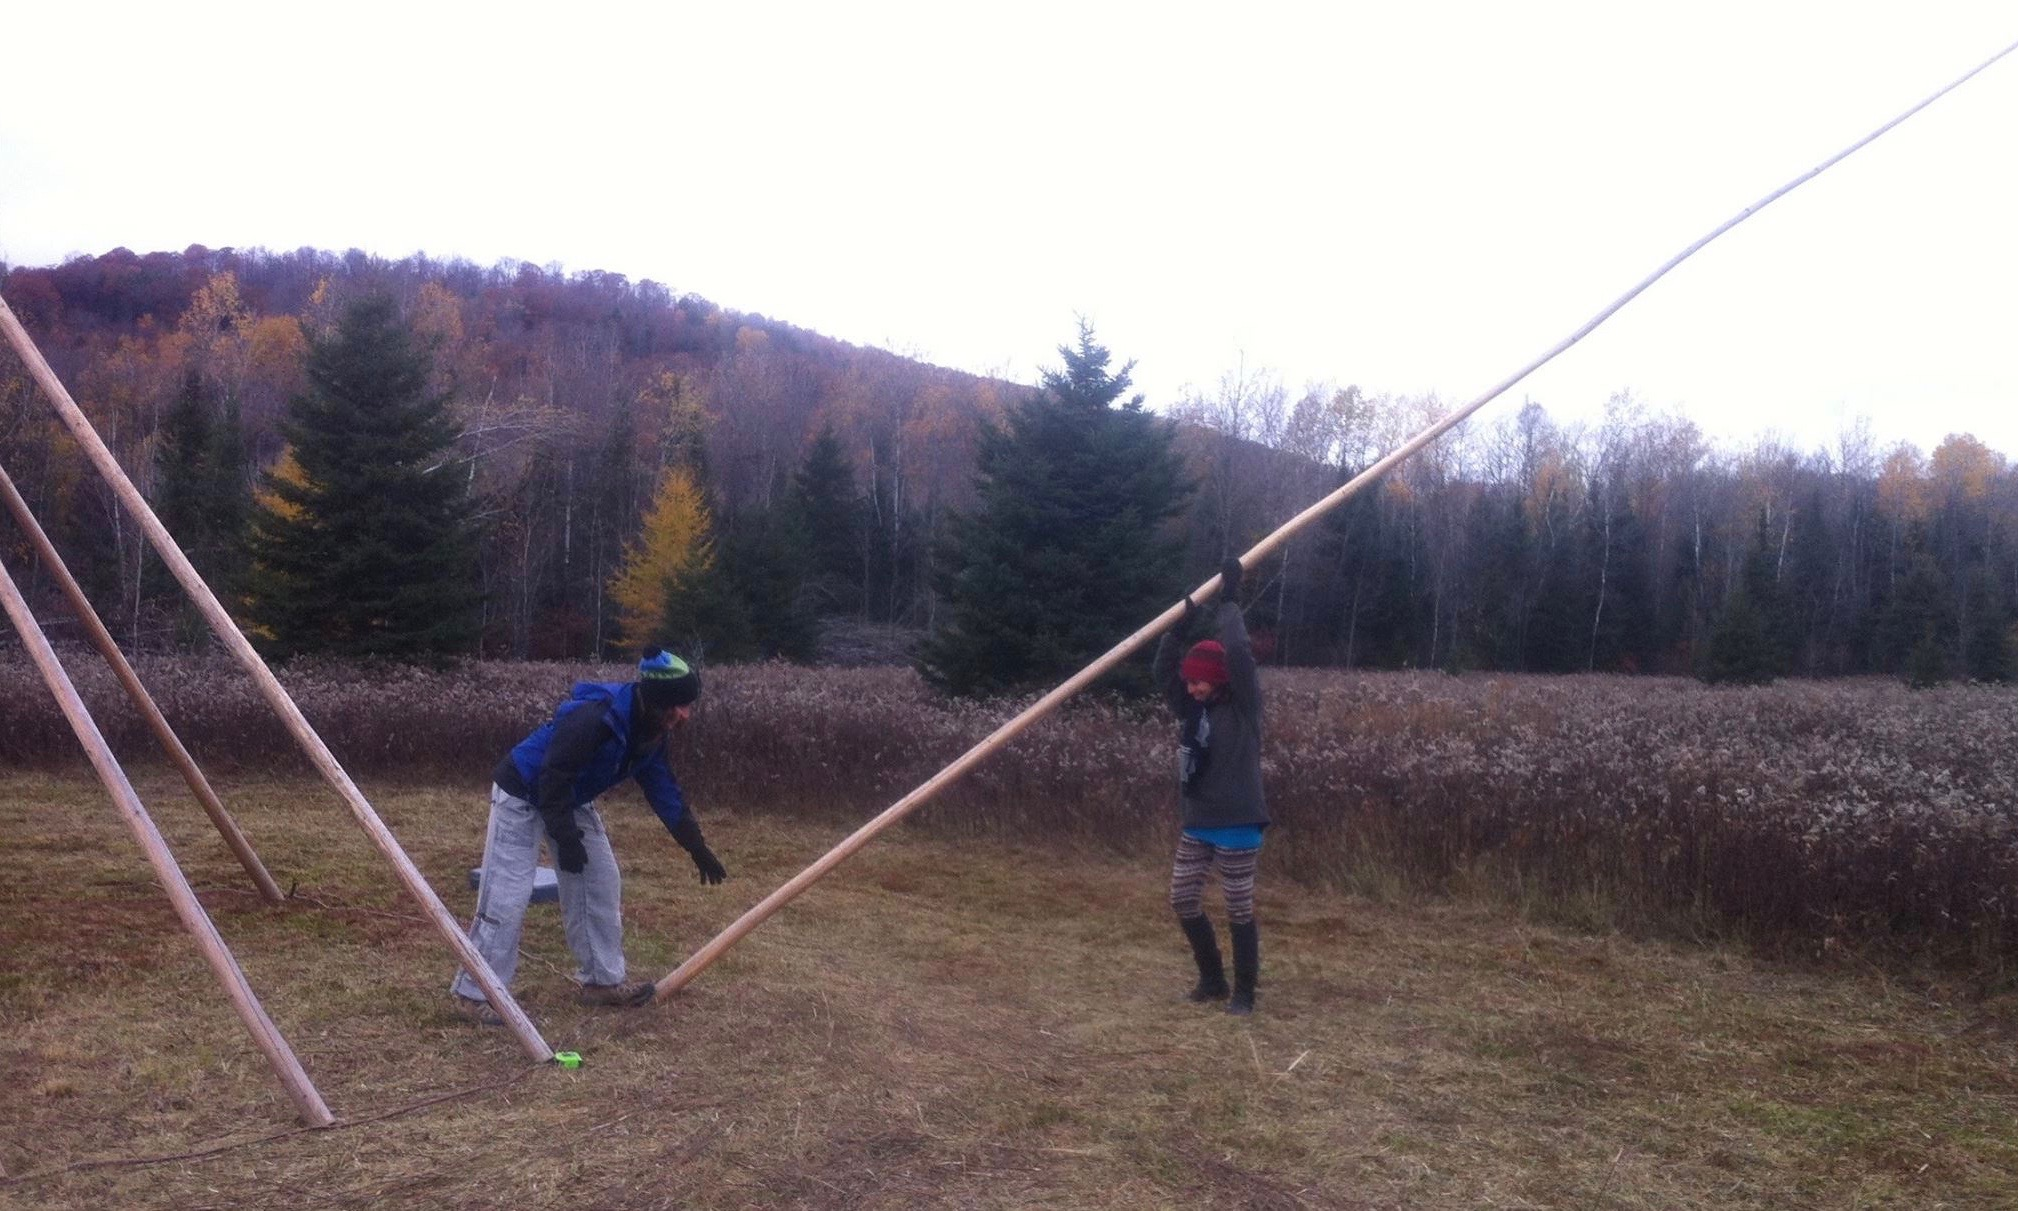 Putting up the Tipi for Samhain